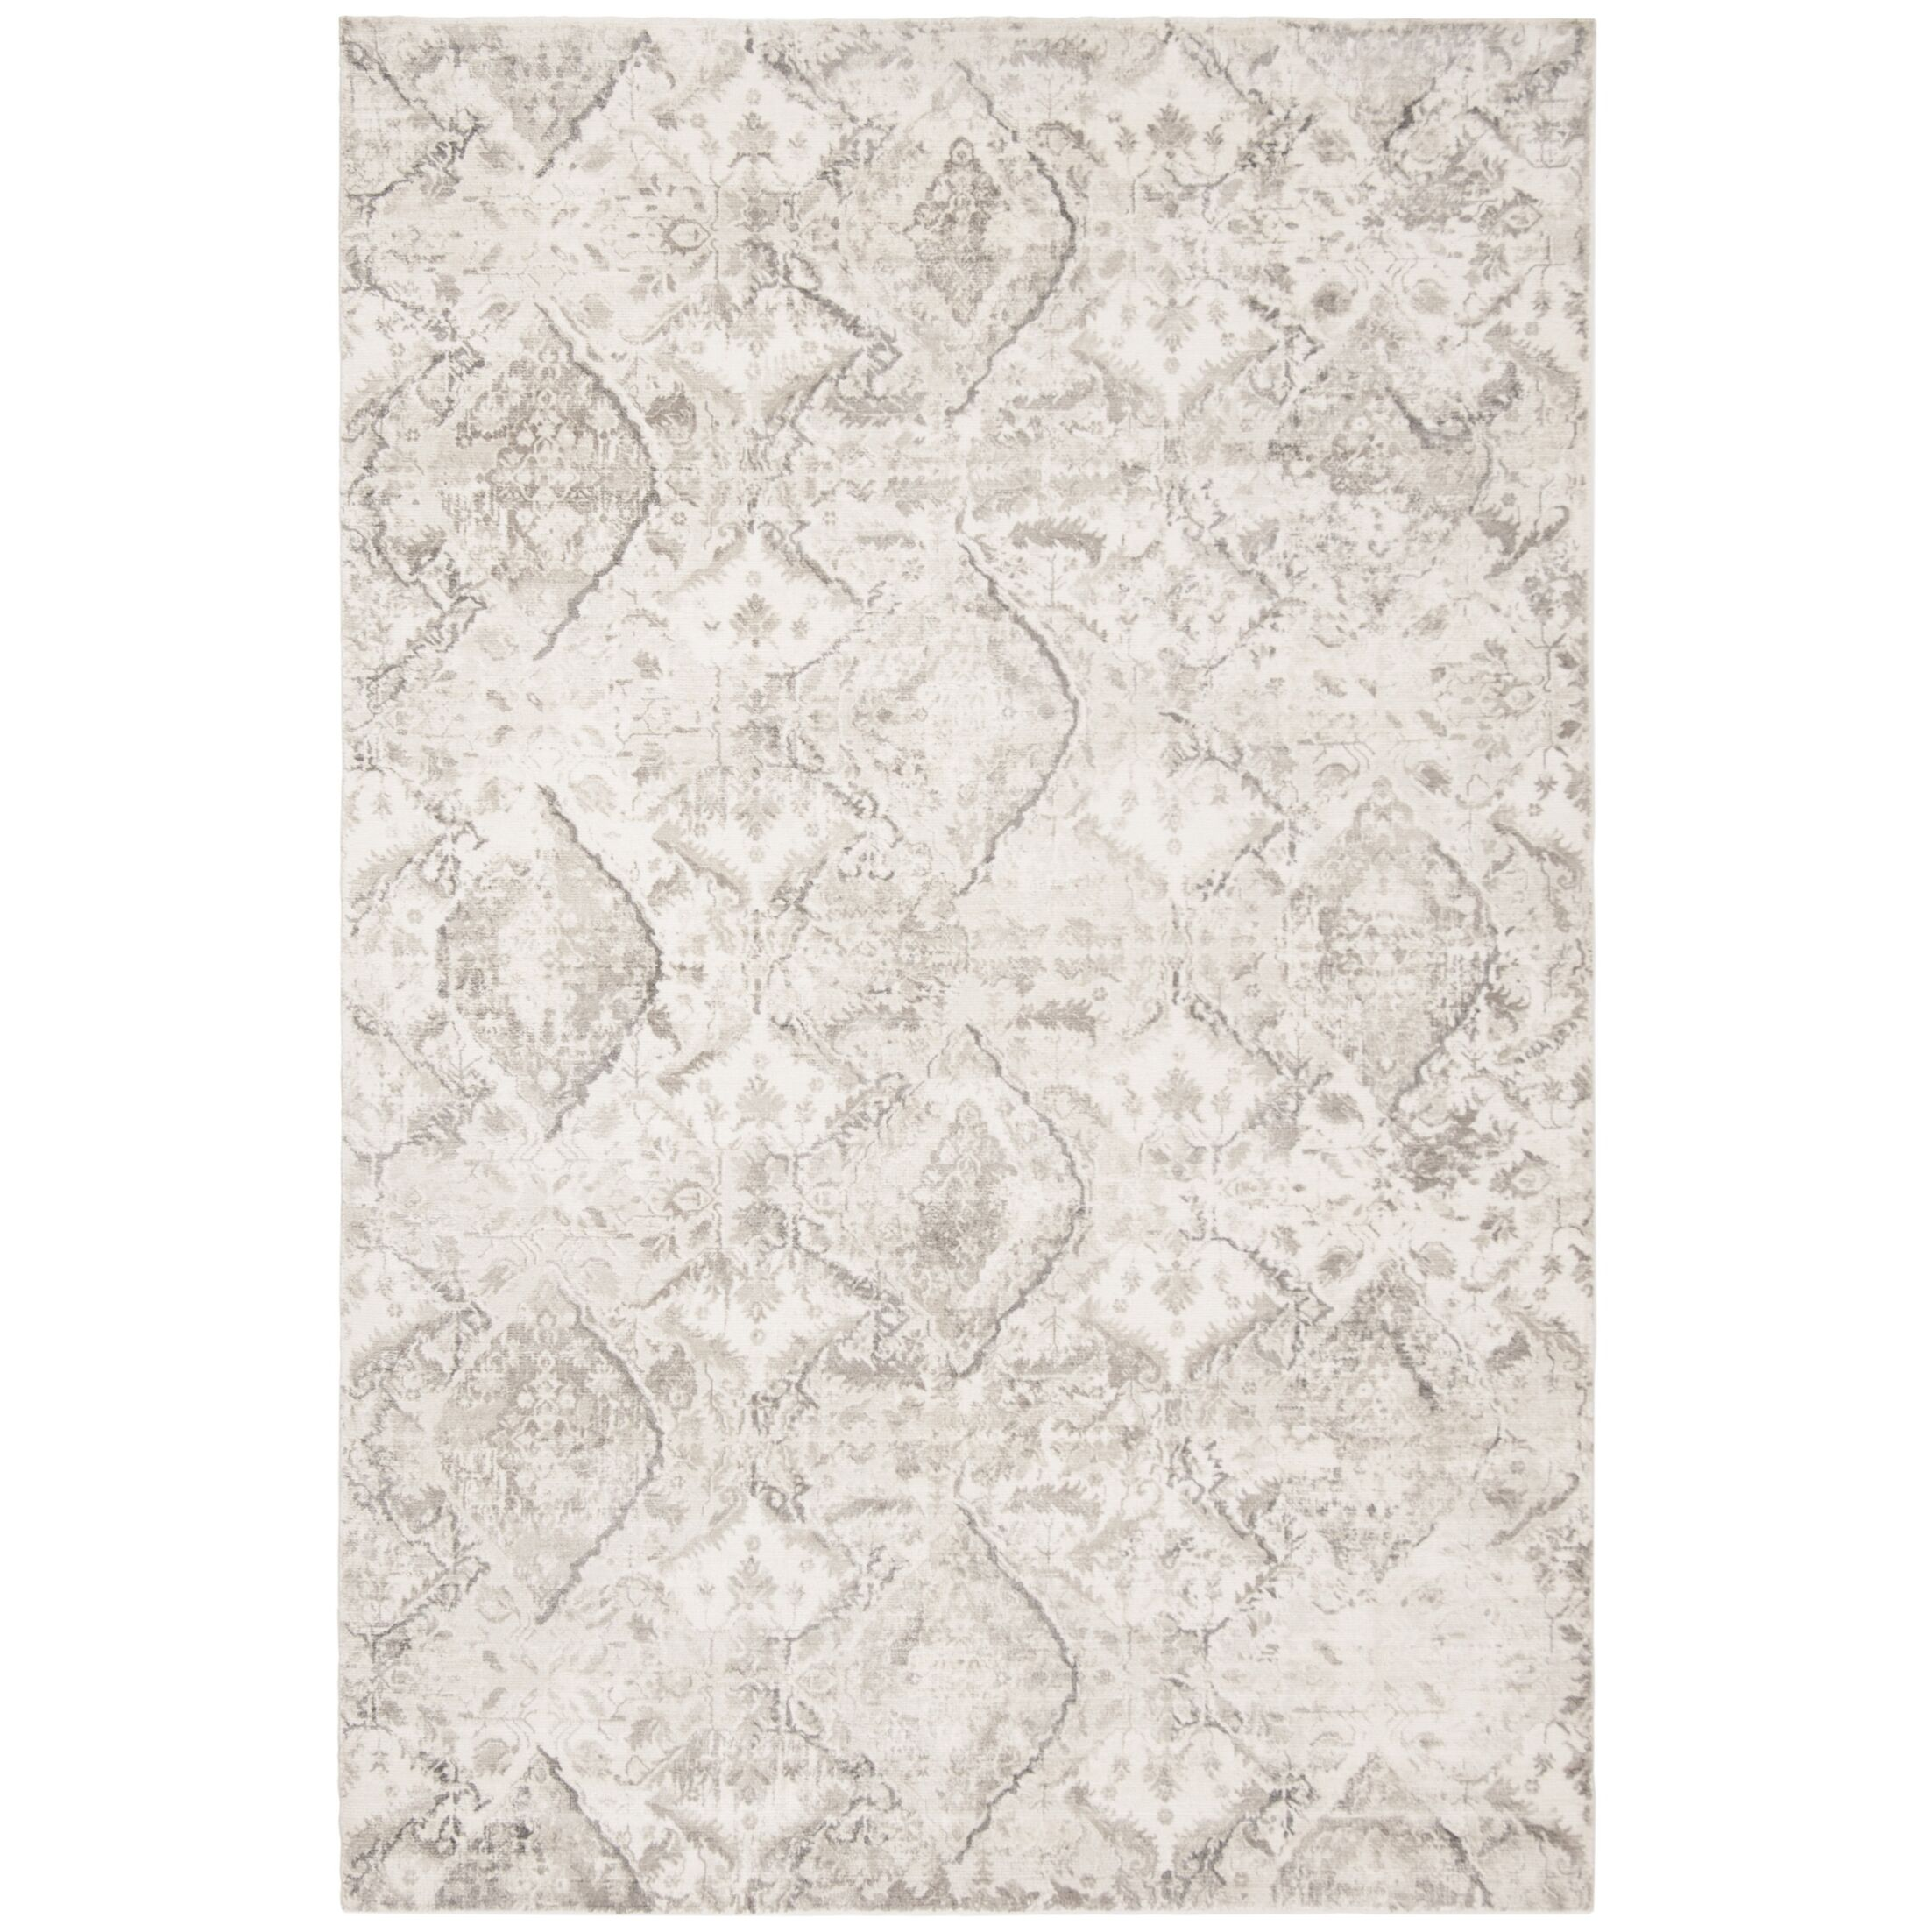 Pumphrey Gray Area Rug Rug Size: Rectangle 6' x 9'